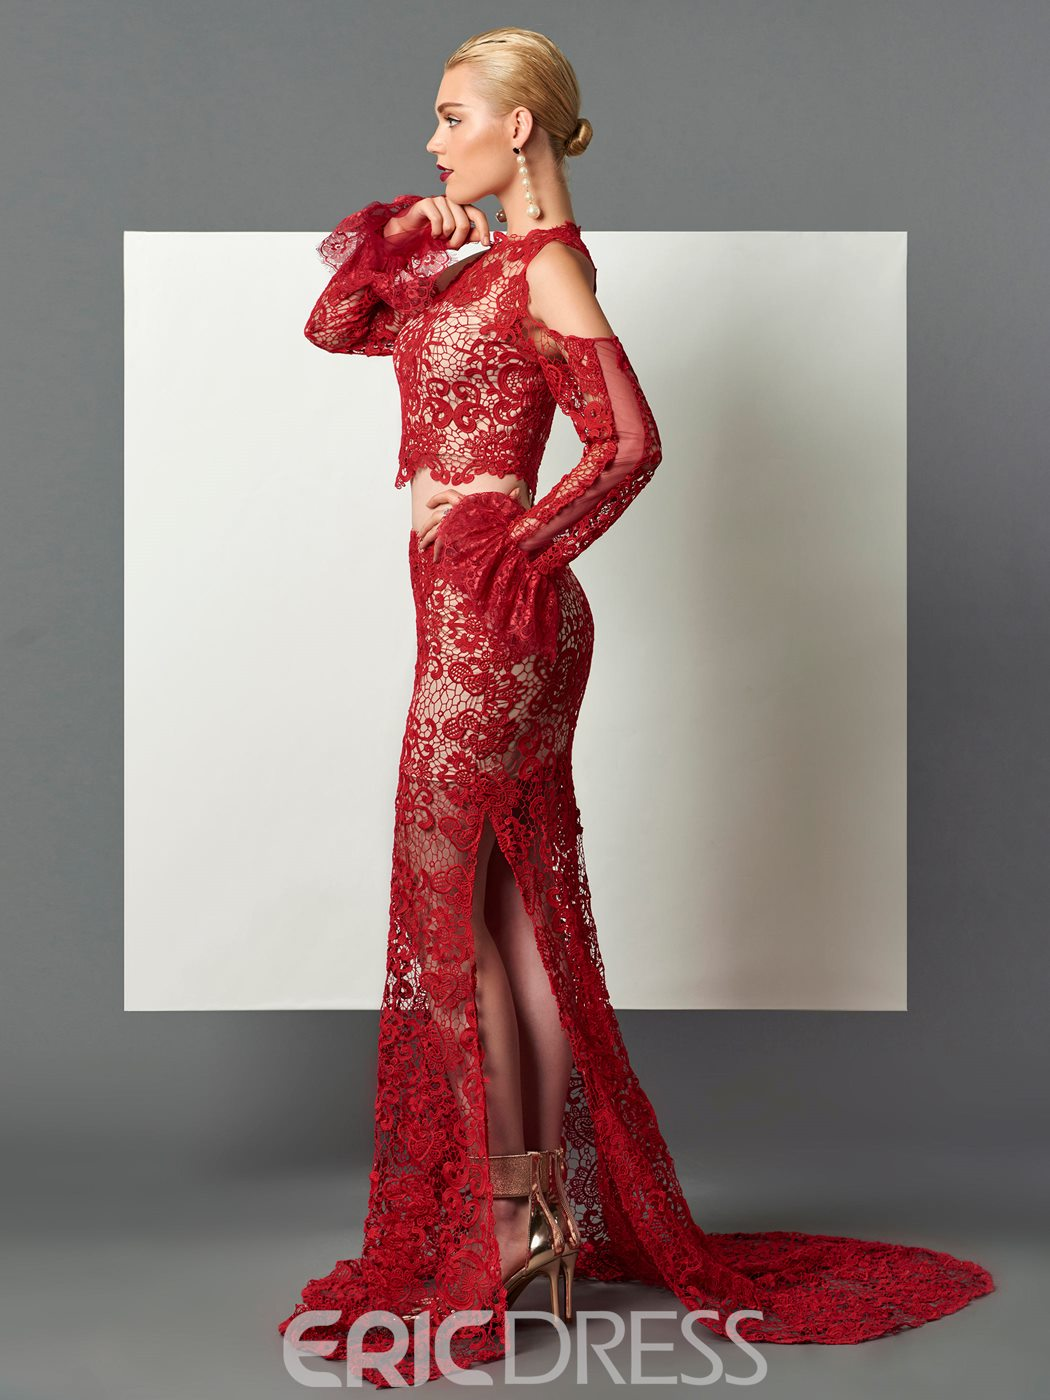 Ericdress Unique DesignSheath Long Sleeves Hollow Lace Sweep Train Evening Dress